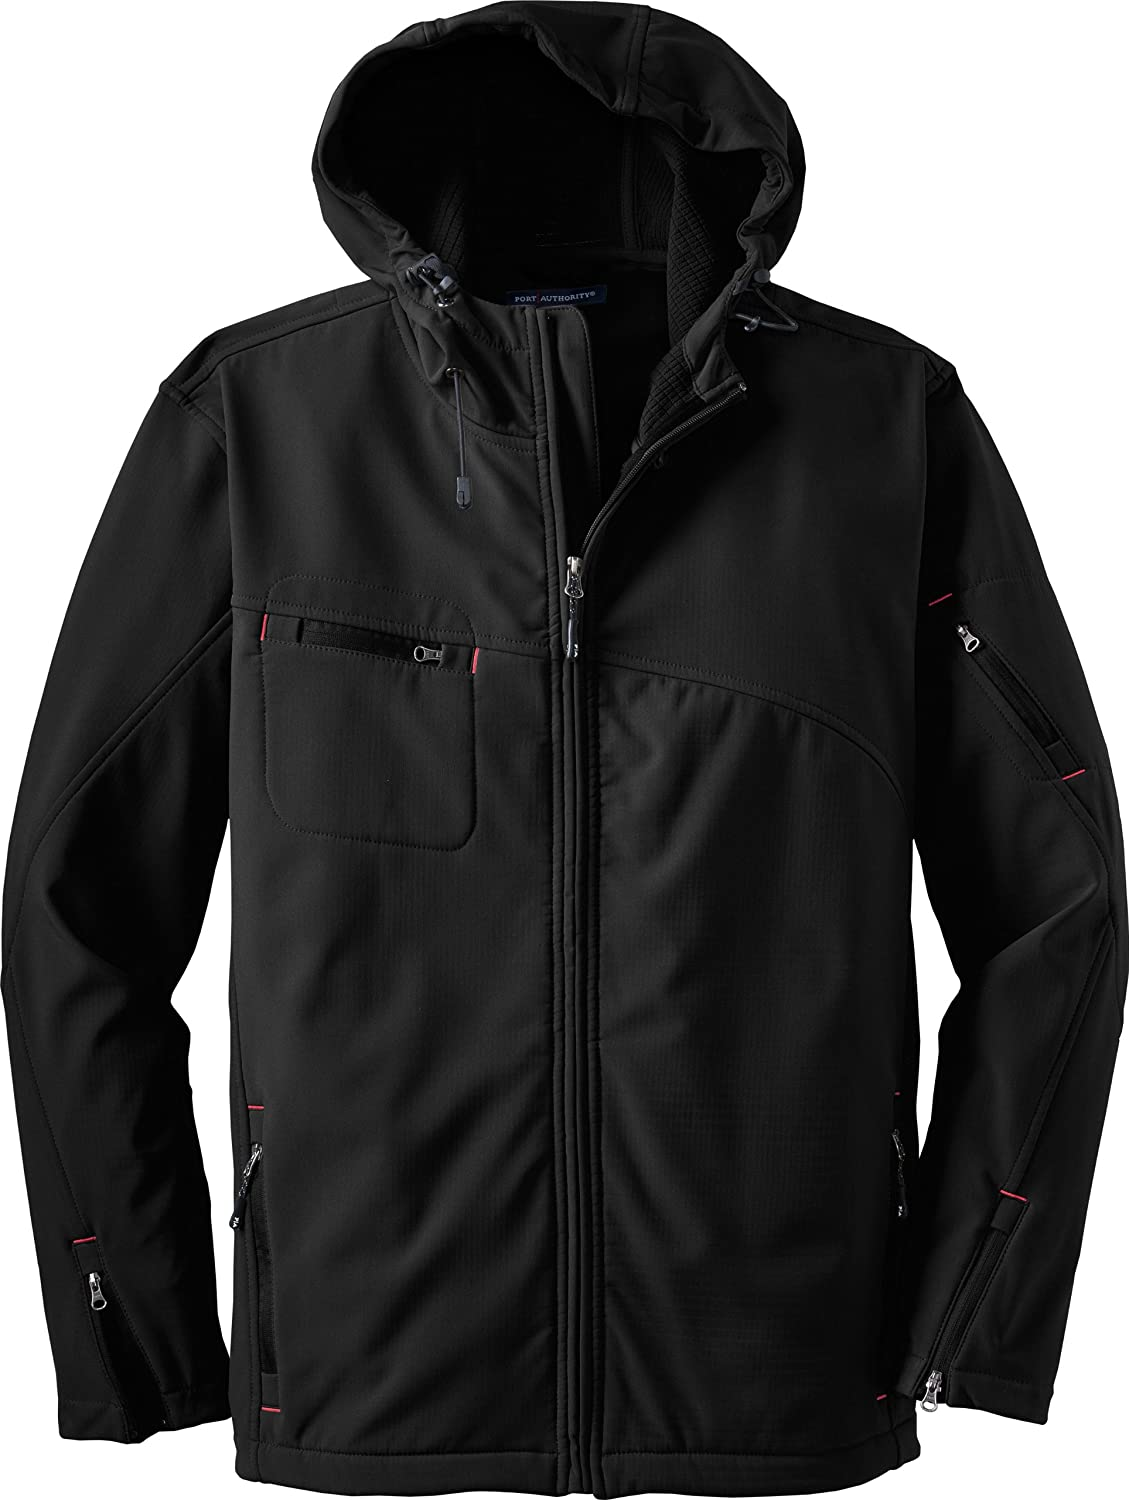 Port Authority Mens Textured Hooded Soft Shell Jacket